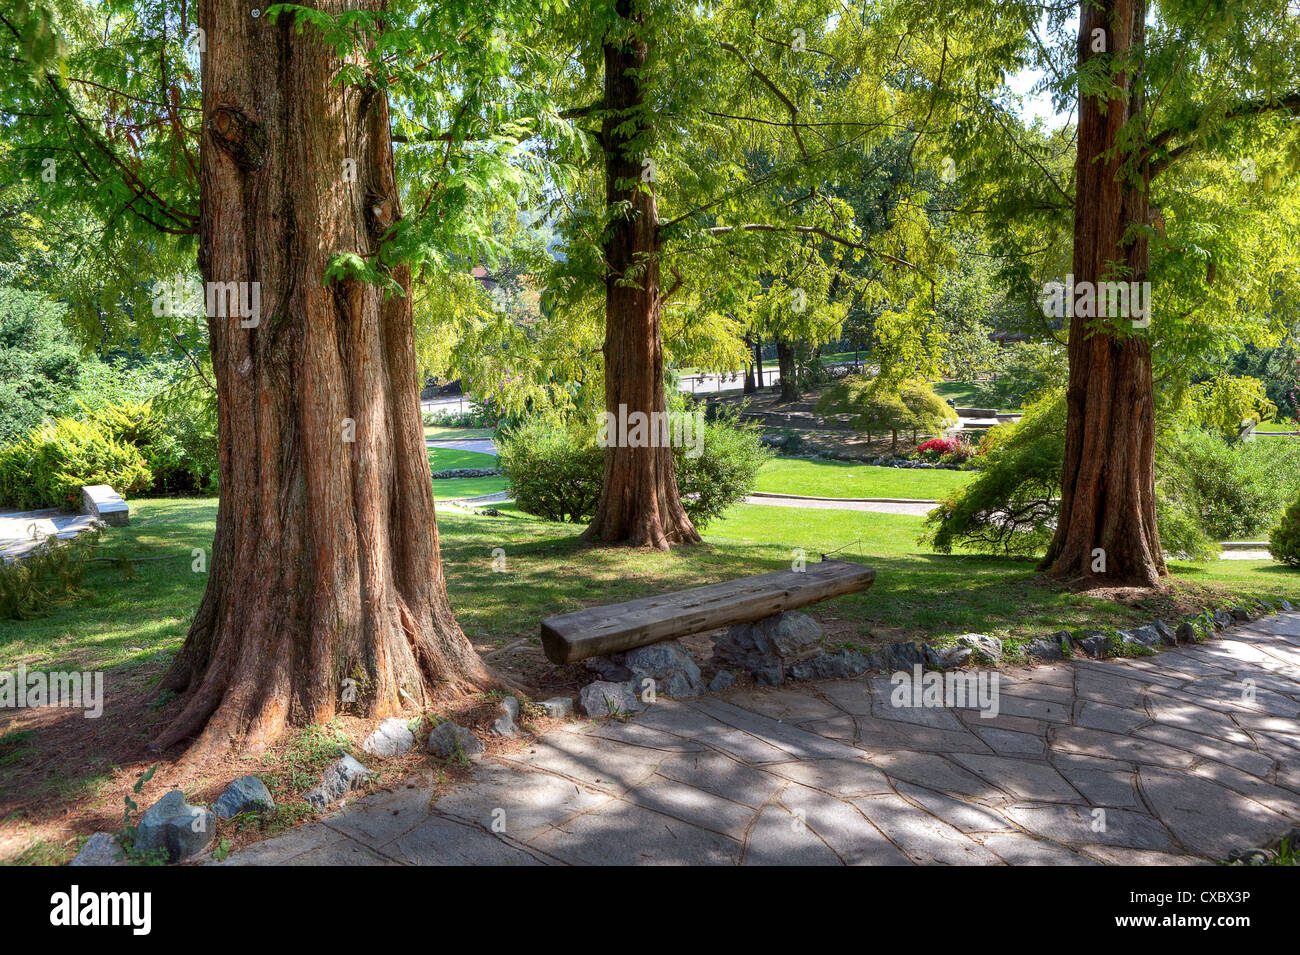 Narrow footpath among trees in Valentino Park (aka Parco del Valentino) in Turin, Italy. - Stock Image